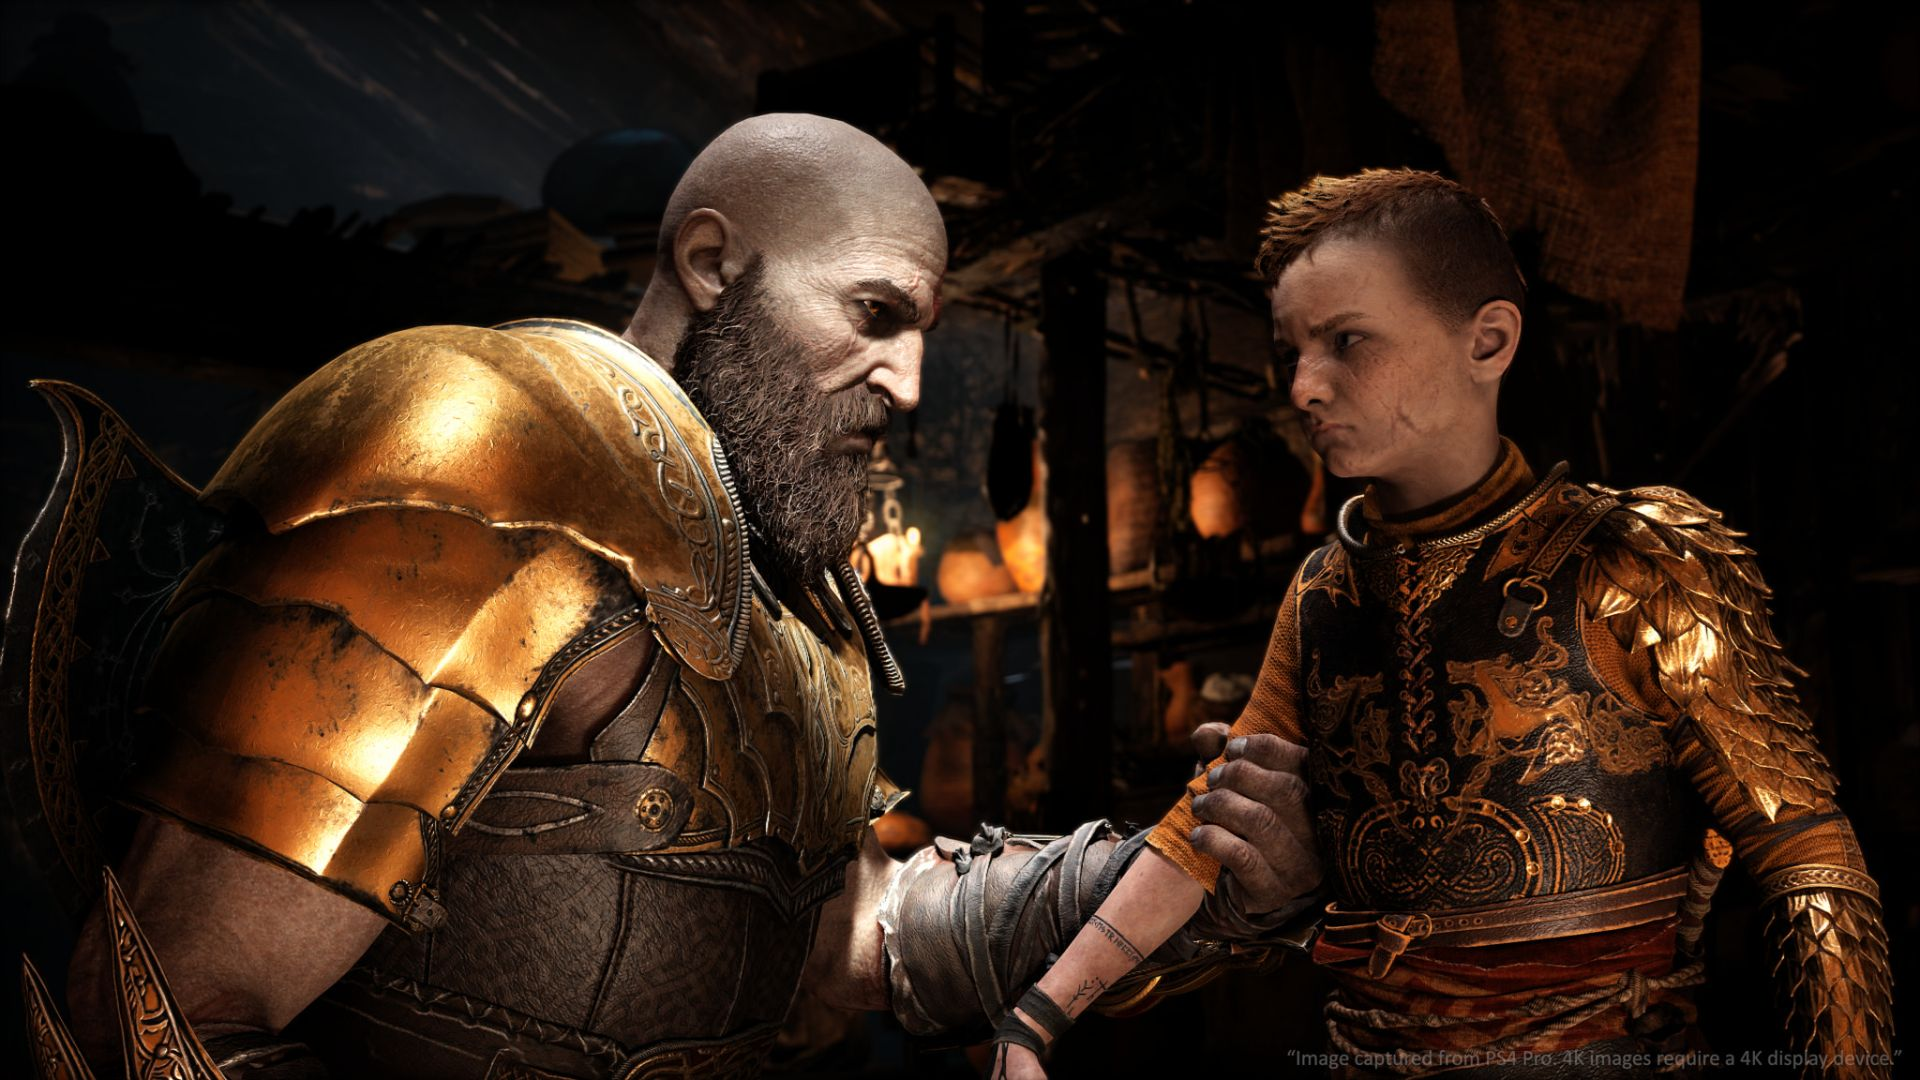 Netflix isn't planning a God of War series, but game director would